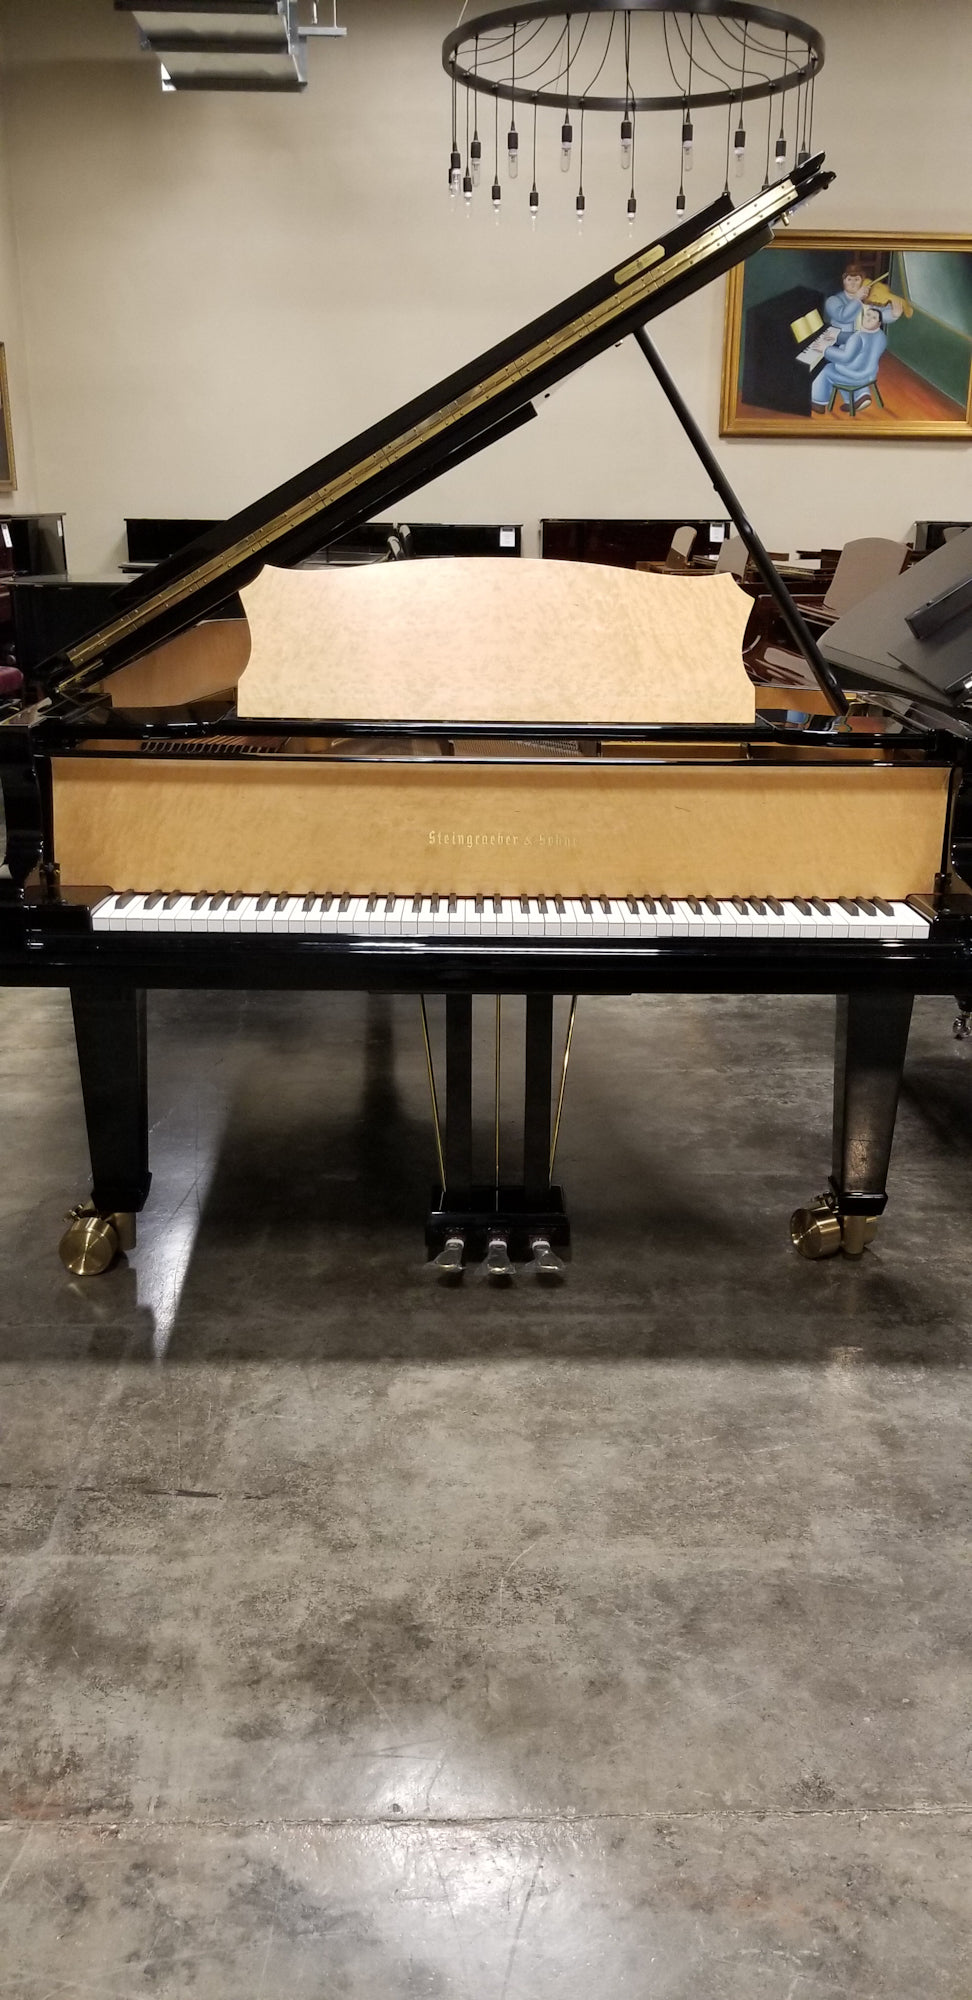 Steingraeber | 2008 | E-272 9 FT Concert Grand Piano| Custom High Polish Ebony | $149,000